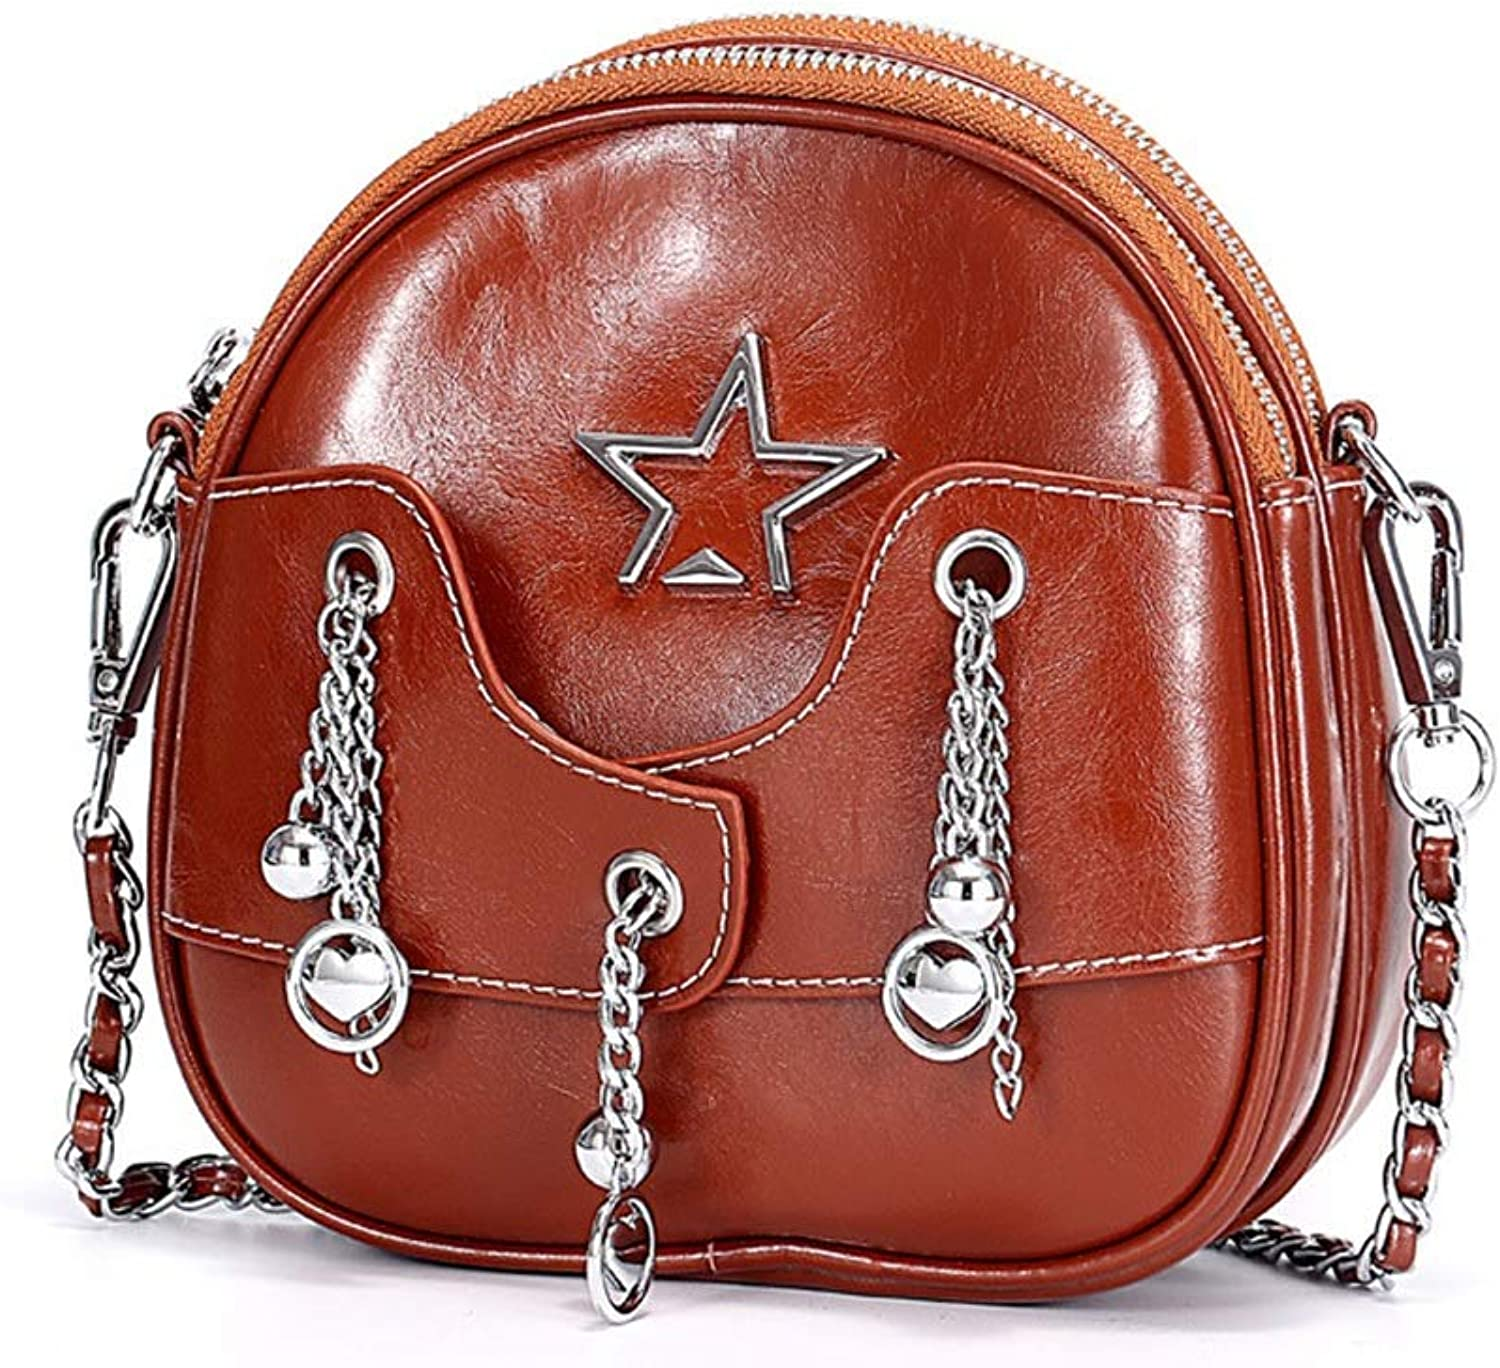 Sturdy Women's Leather Crossbody Chain with Chain Pendant Personality Portable Casual Everyday Weekend Leisure Travel Messenger Handbag Large Capacity (color   Brown)